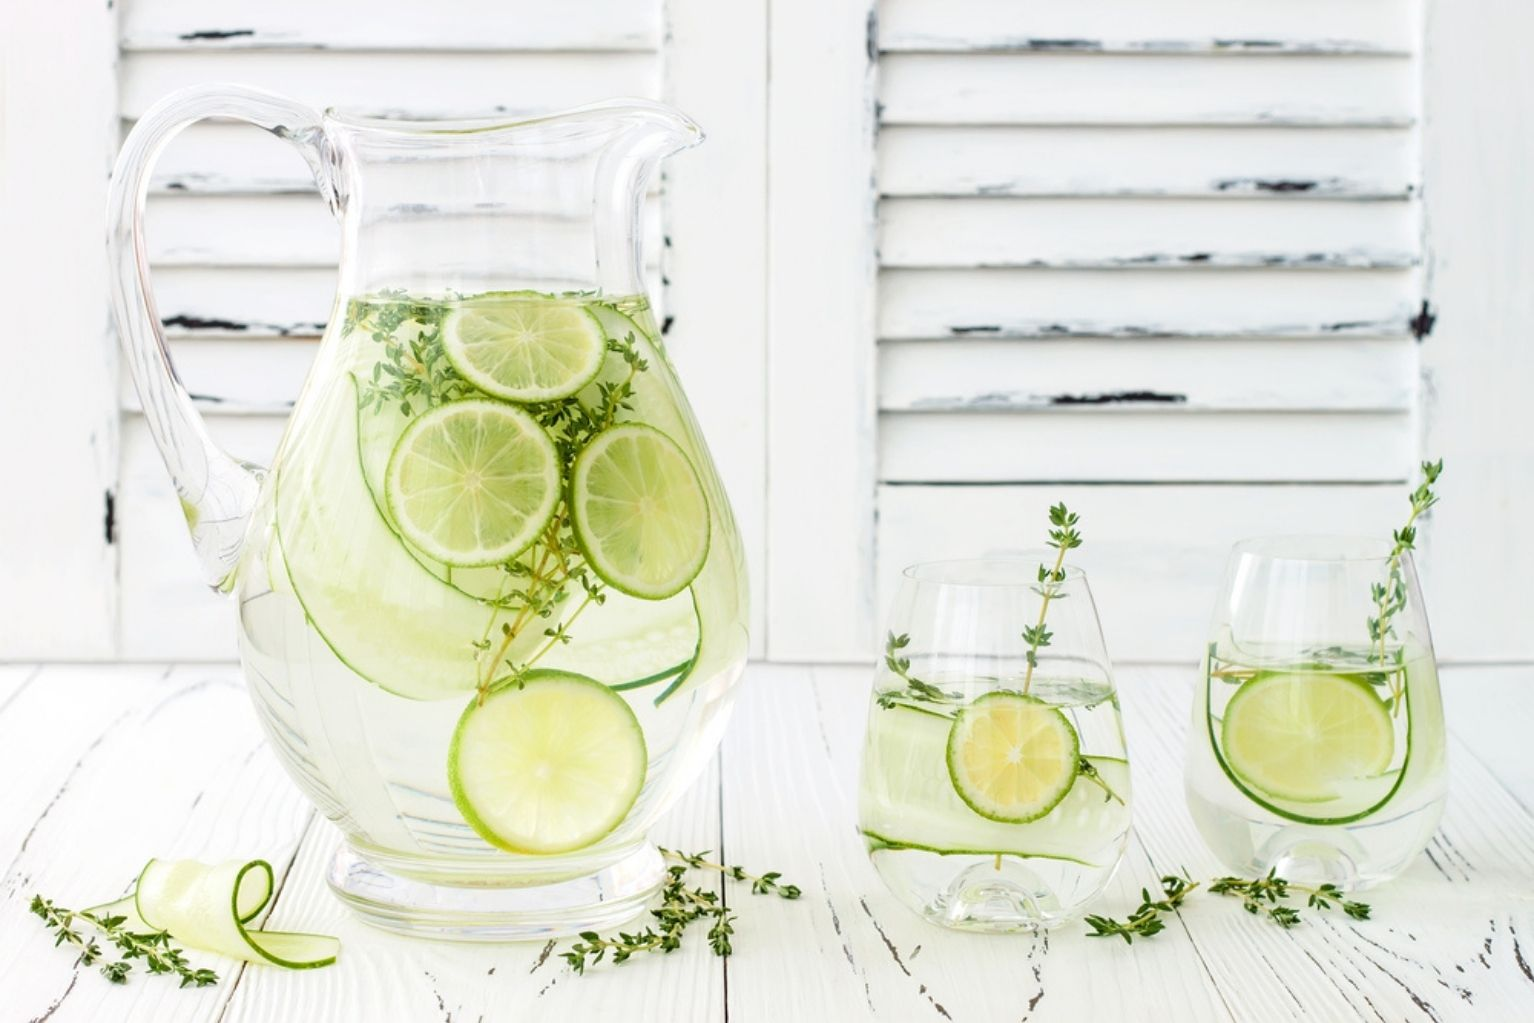 Pitcher of lime and thyme infused water next to two clear glasses full of infused water.